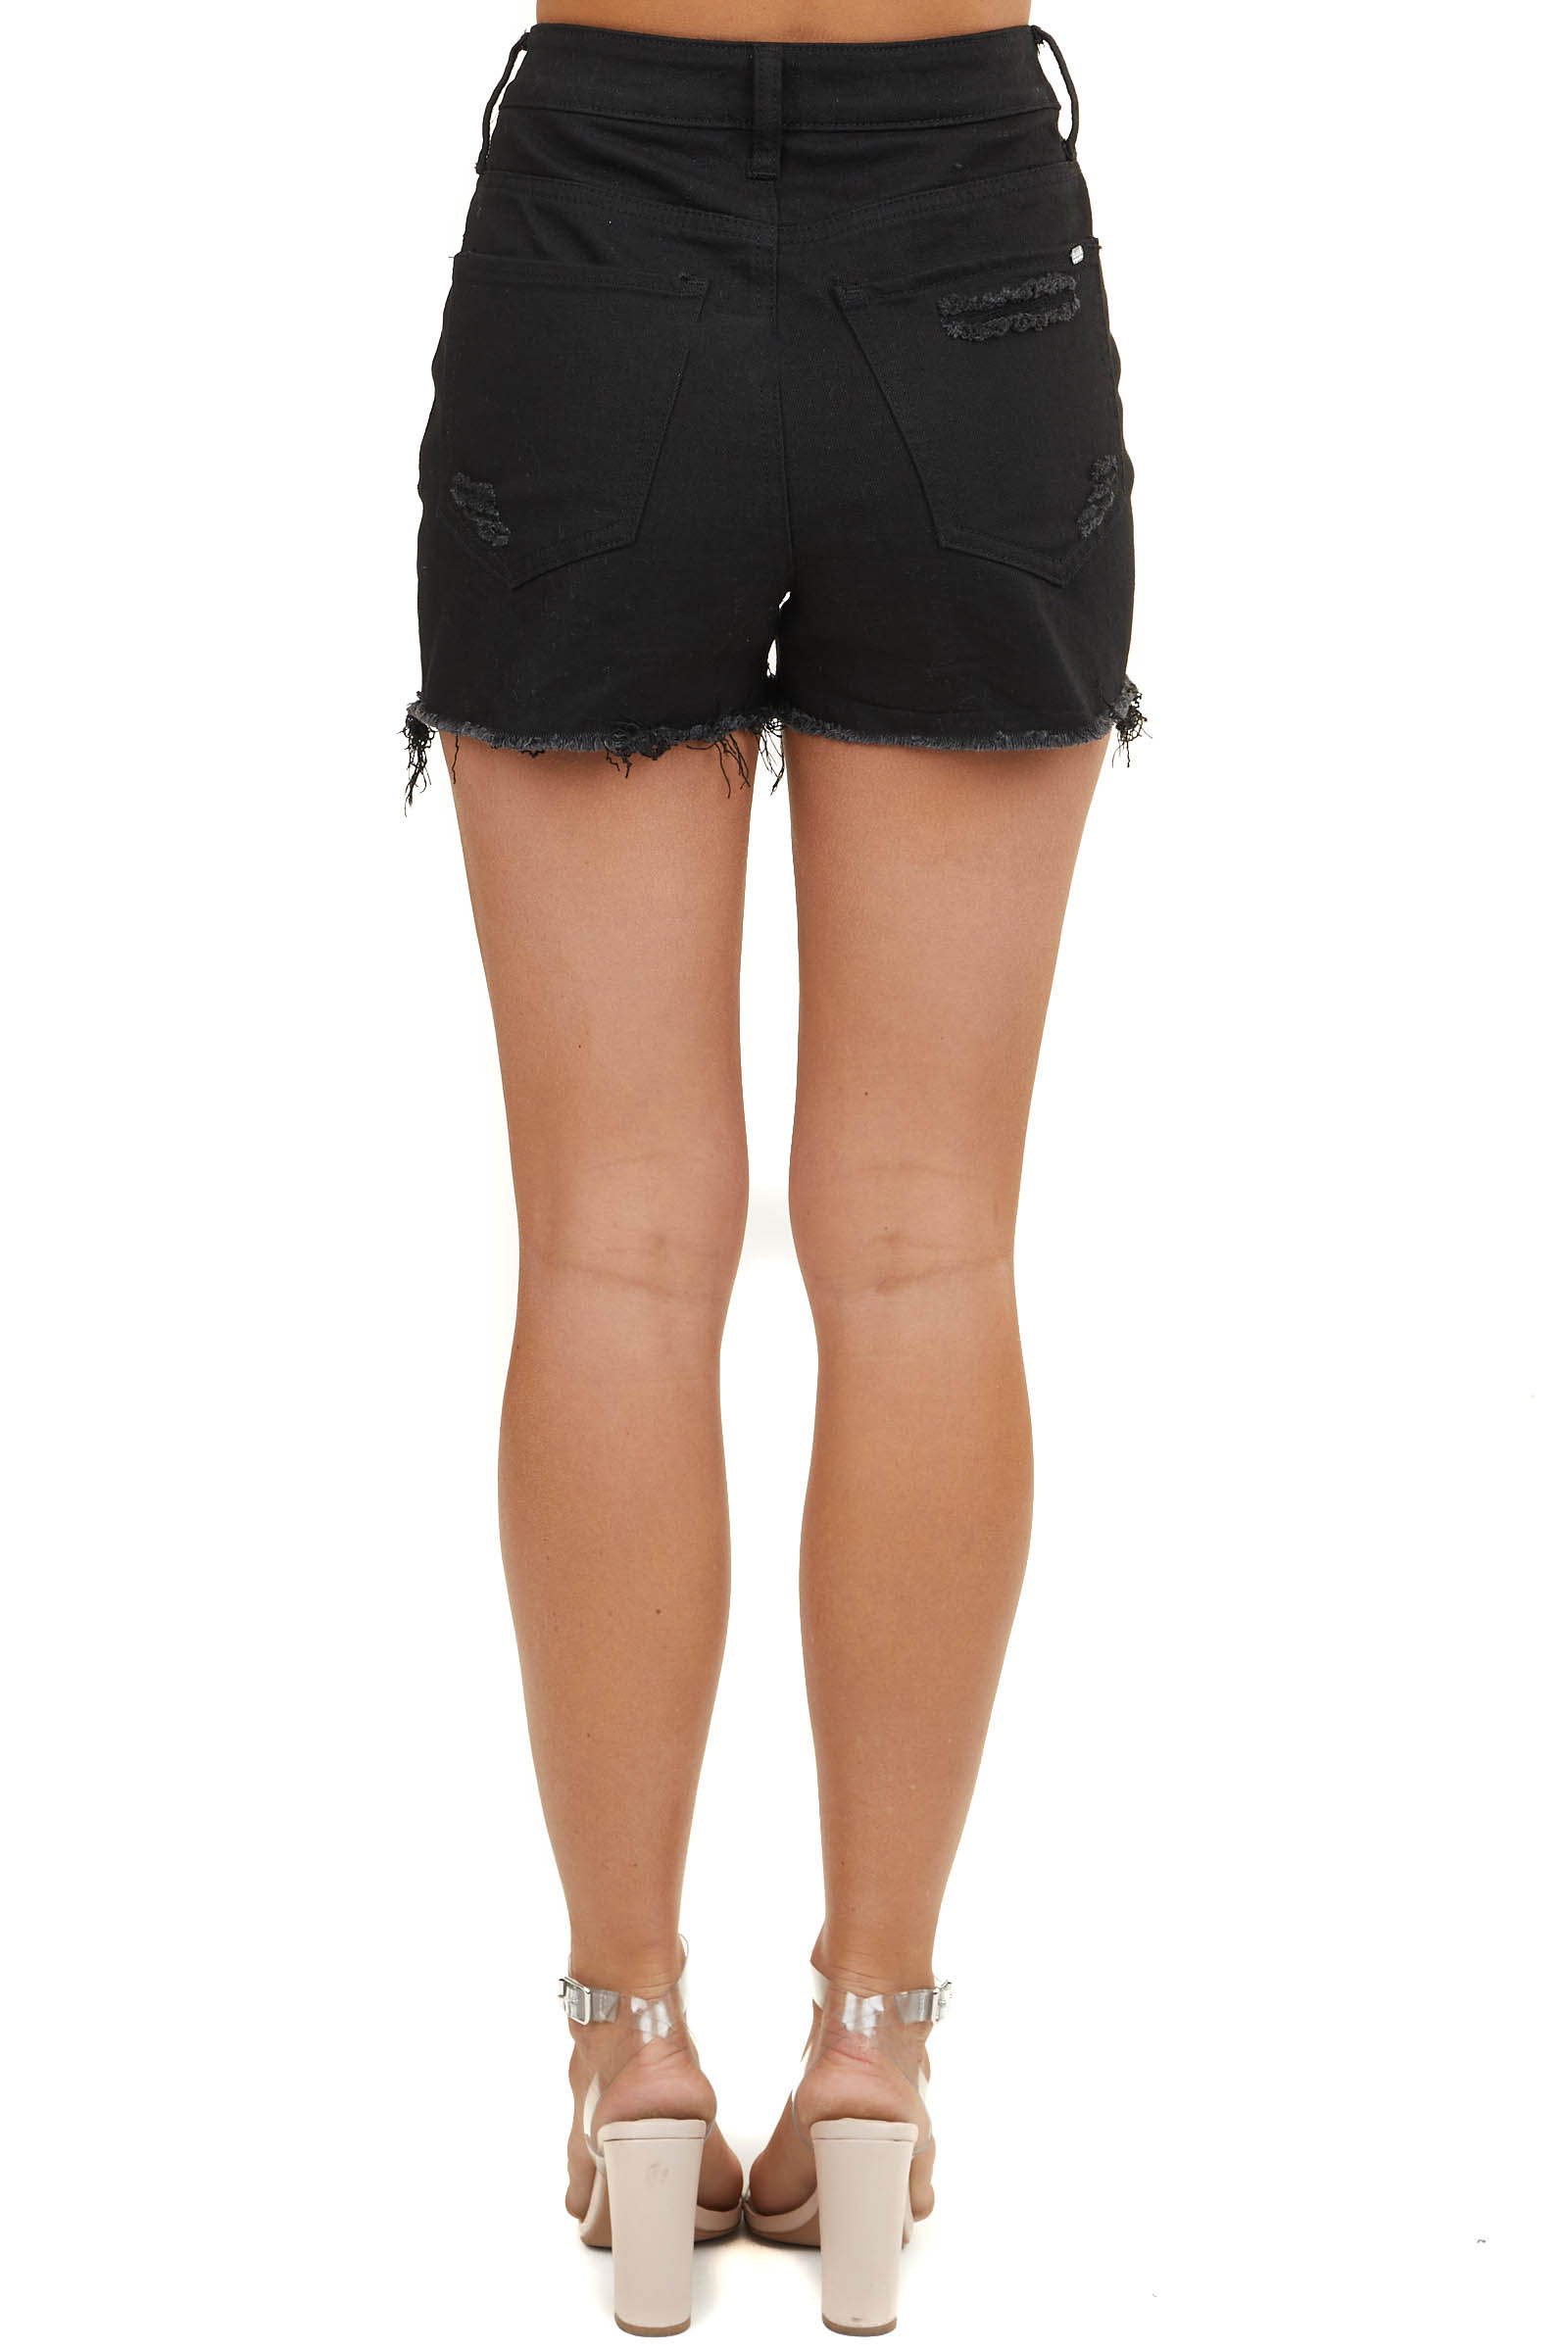 Black High Rise Shorts with Distressing Detail and Raw Hems